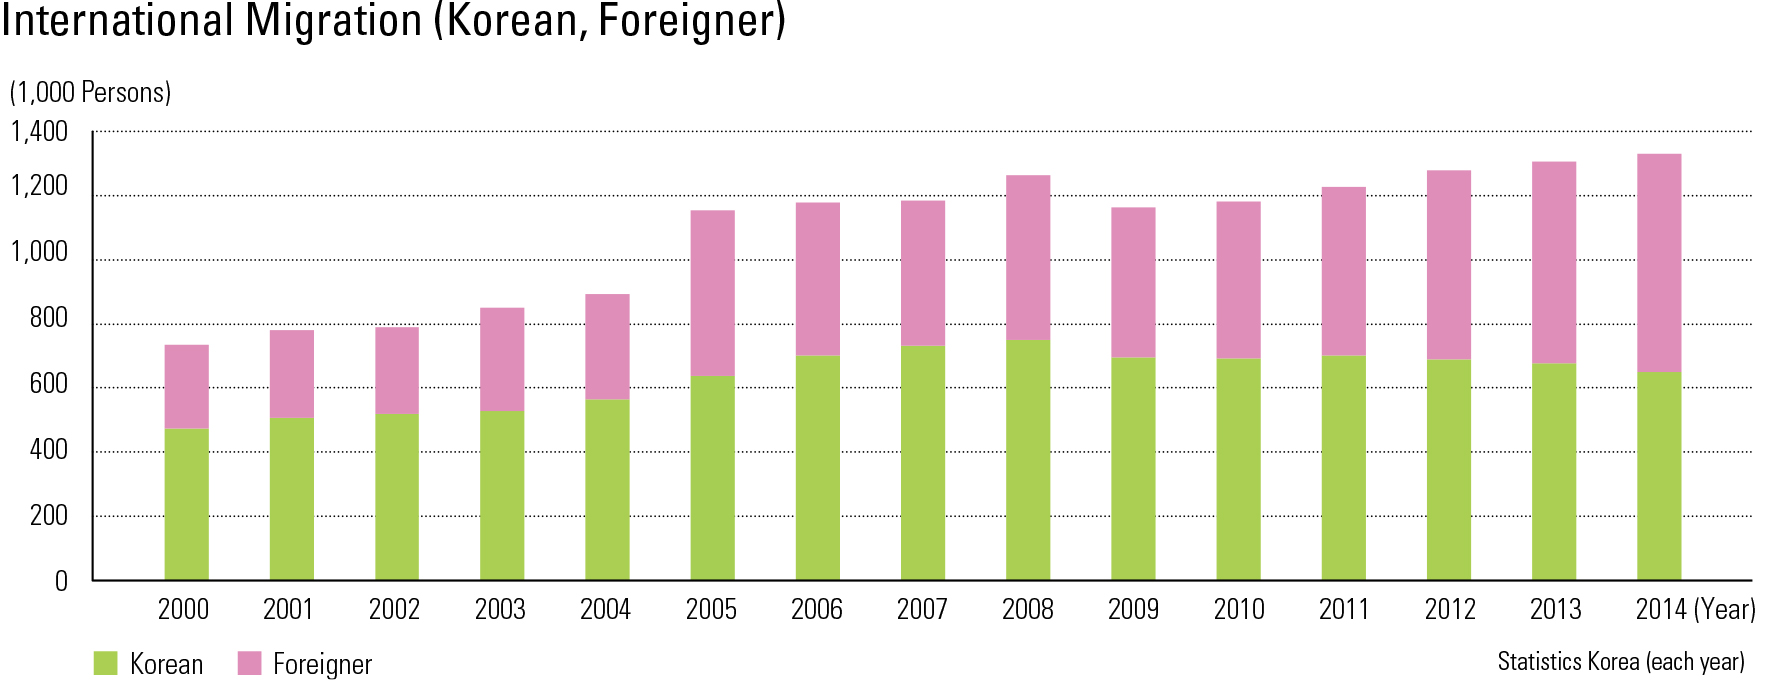 "International Migration (Korean, Foreigner)<p class=""oz_zoom"" zimg=""http://imagedata.cafe24.com/us_3/us3_122-3_2.jpg""><span style=""font-family:Nanum Myeongjo;""><span style=""font-size:18px;""><span class=""label label-danger"">UPDATE DATA</span></span></p>"